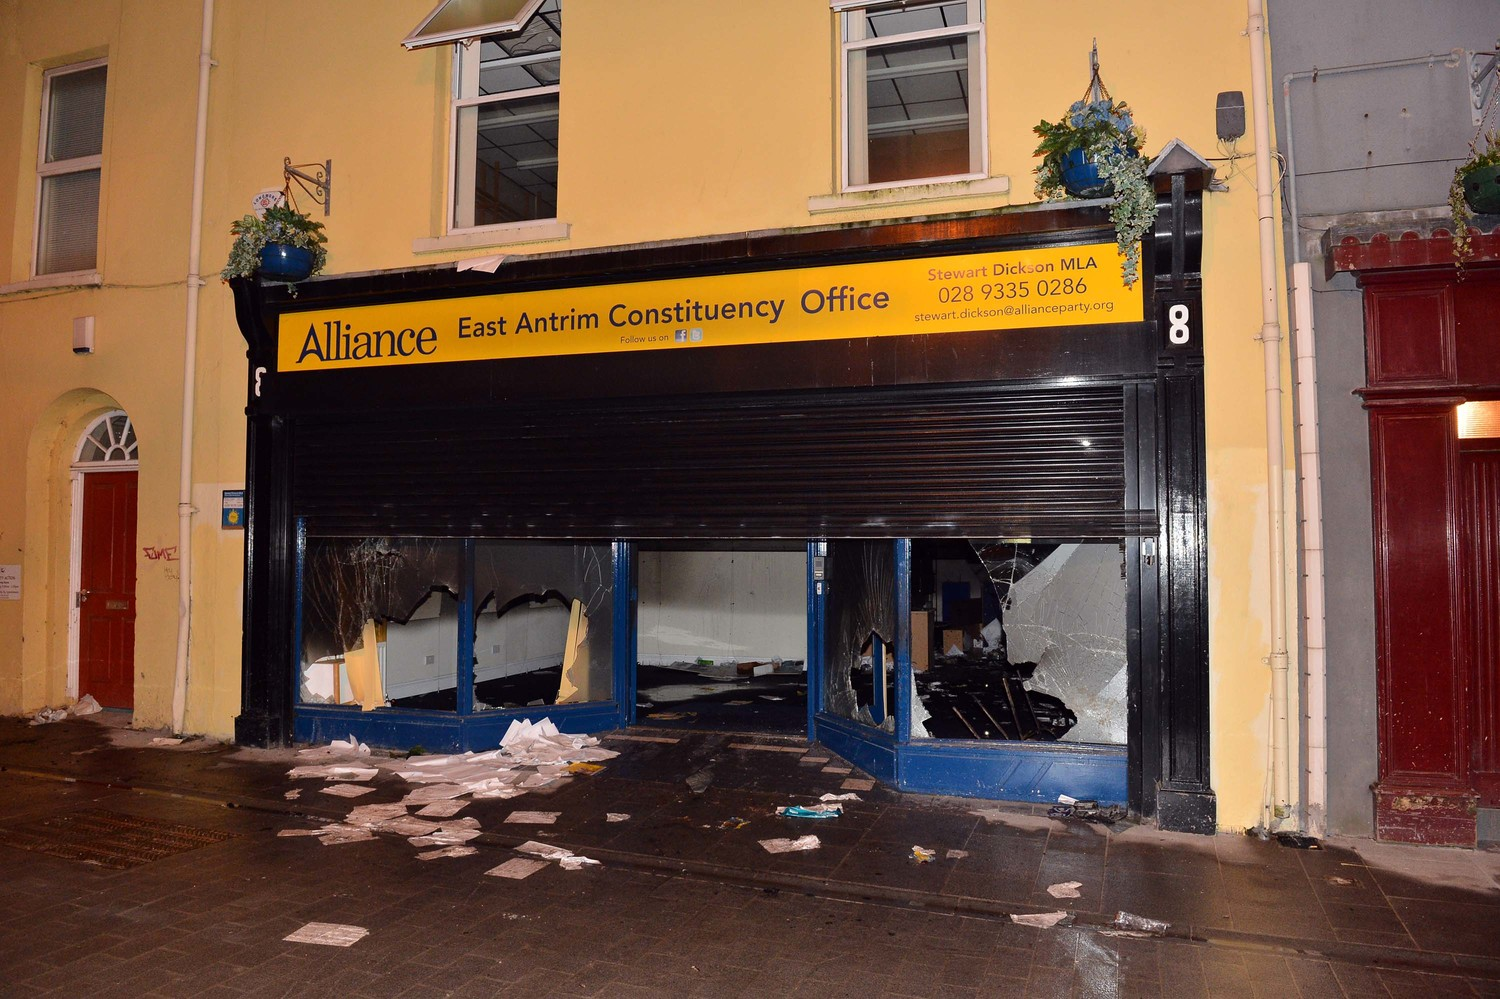 Alliance Party premises in Carrickfergus after Wednesday night's loyalist attack